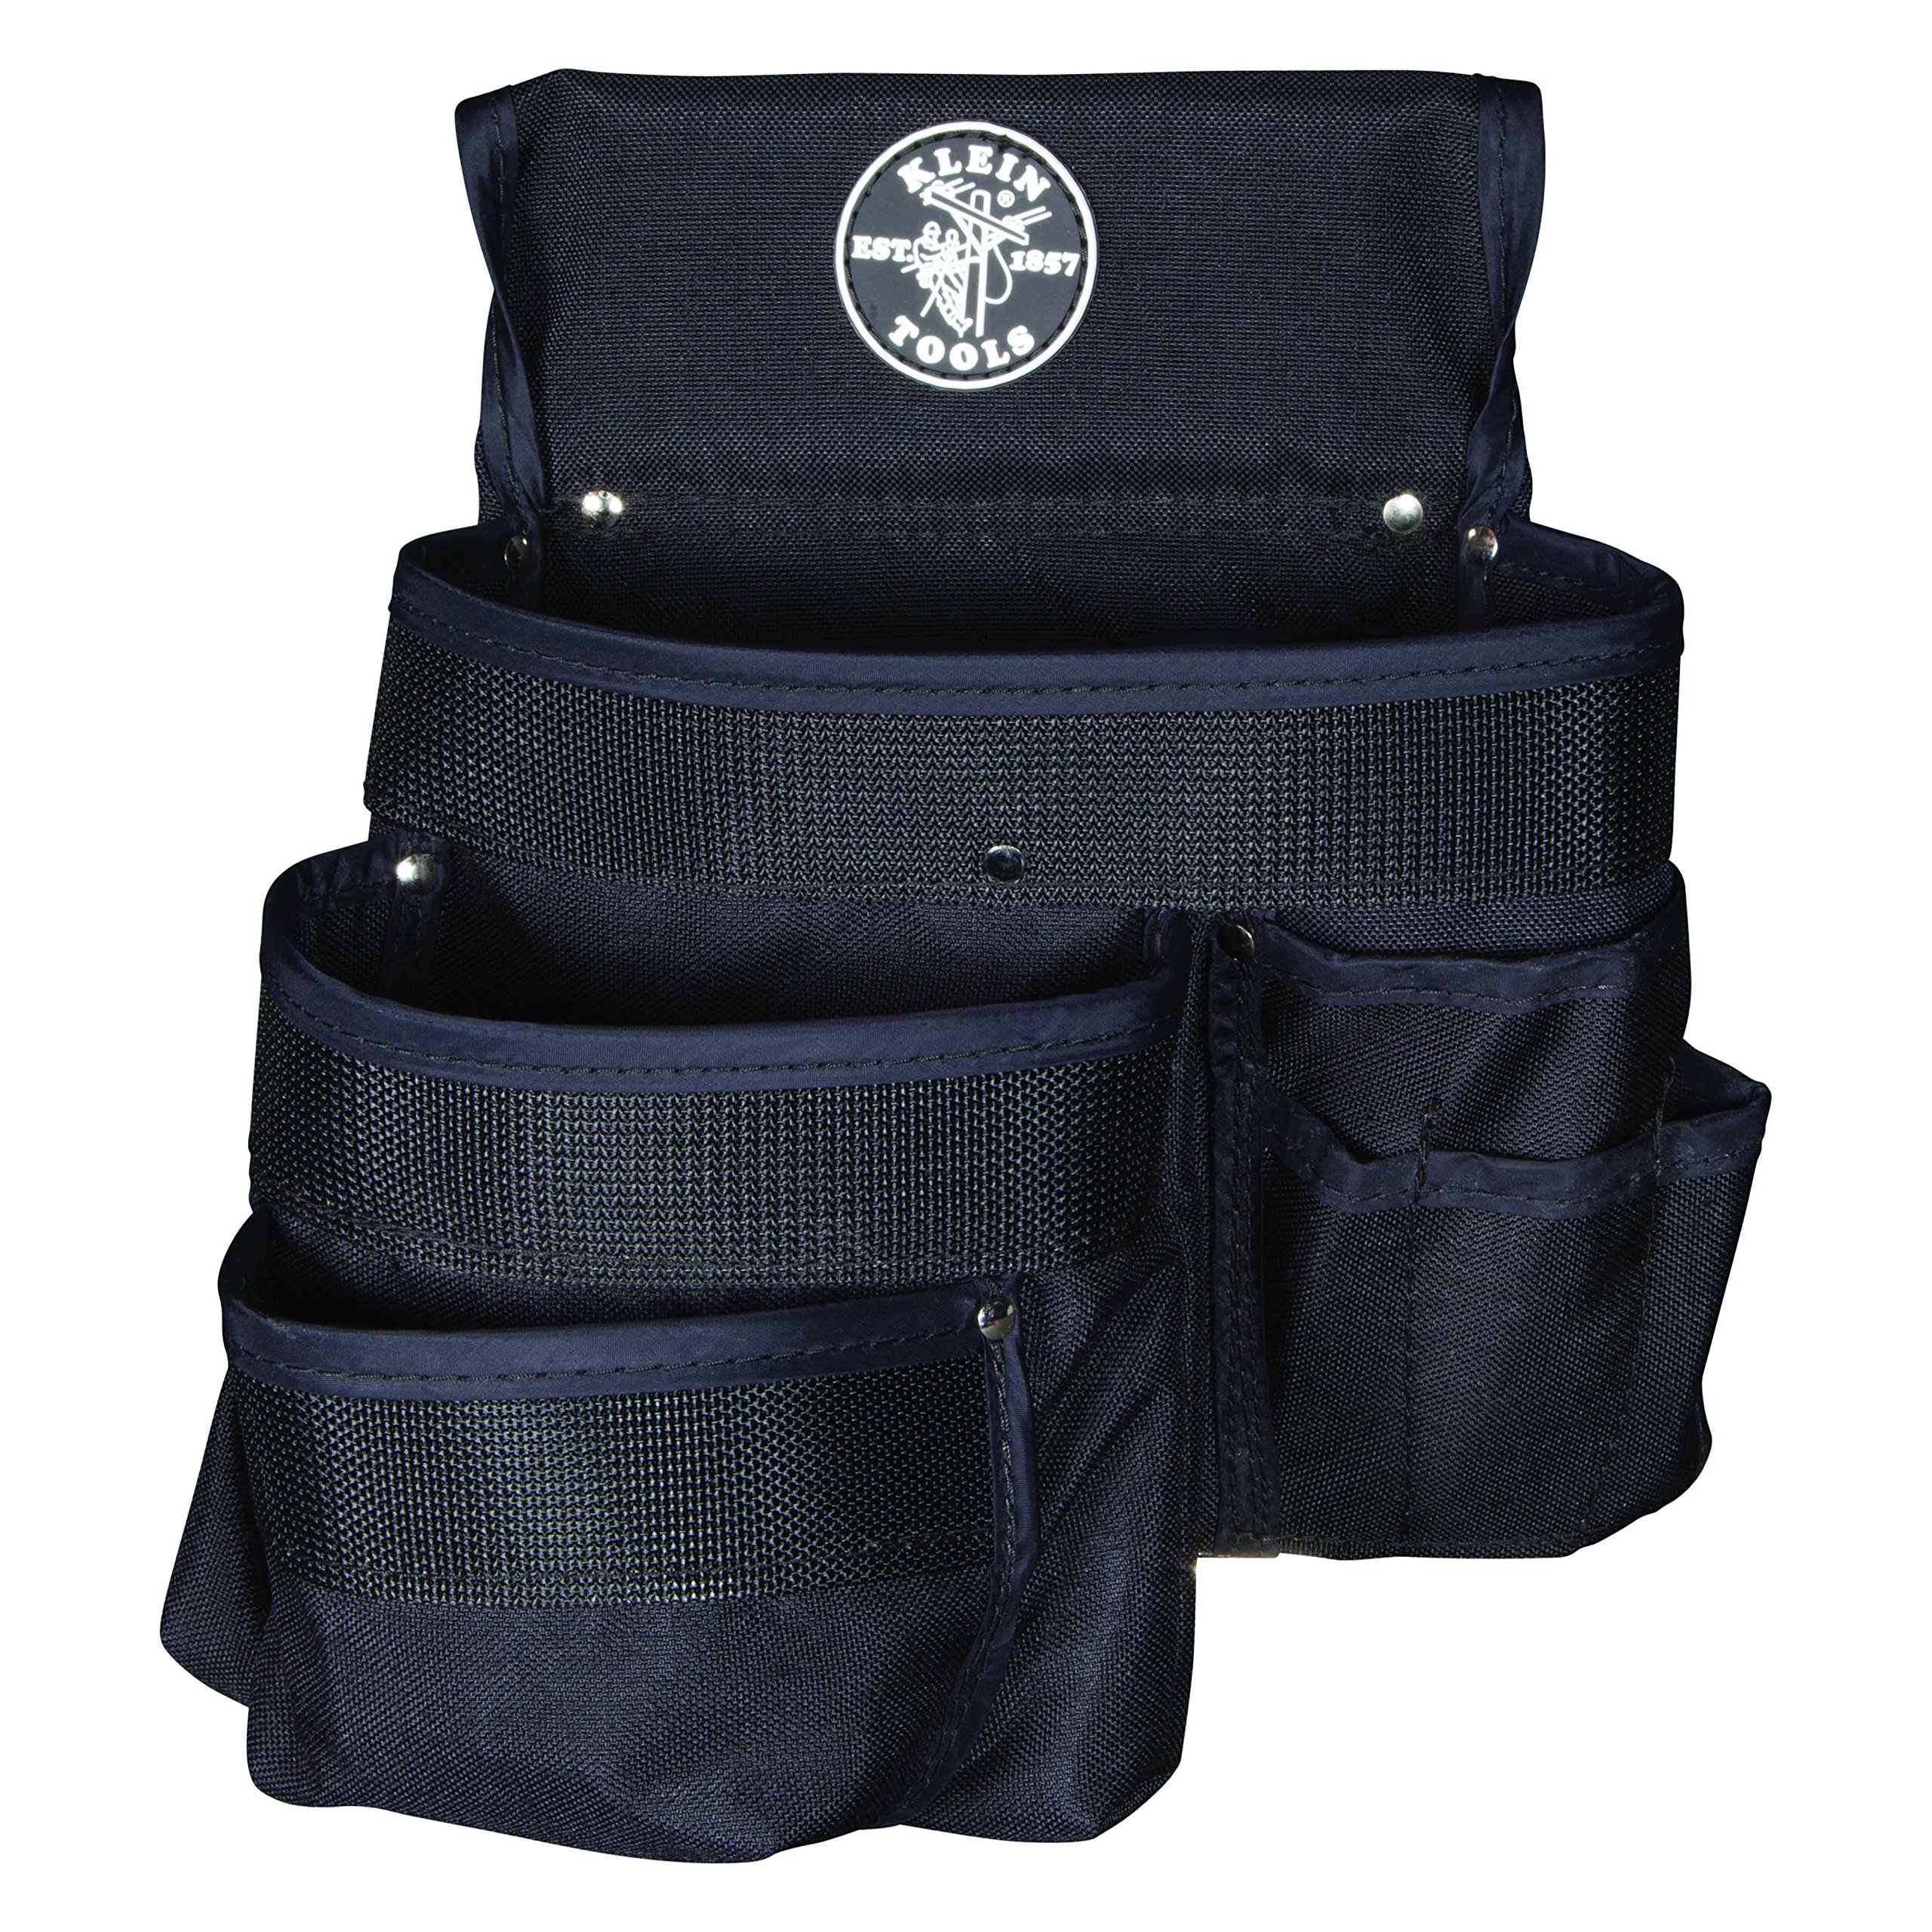 PowerLine Series 9-Pocket Tool Pouch Klein Tools 5700 by Klein Tools (Image #1)